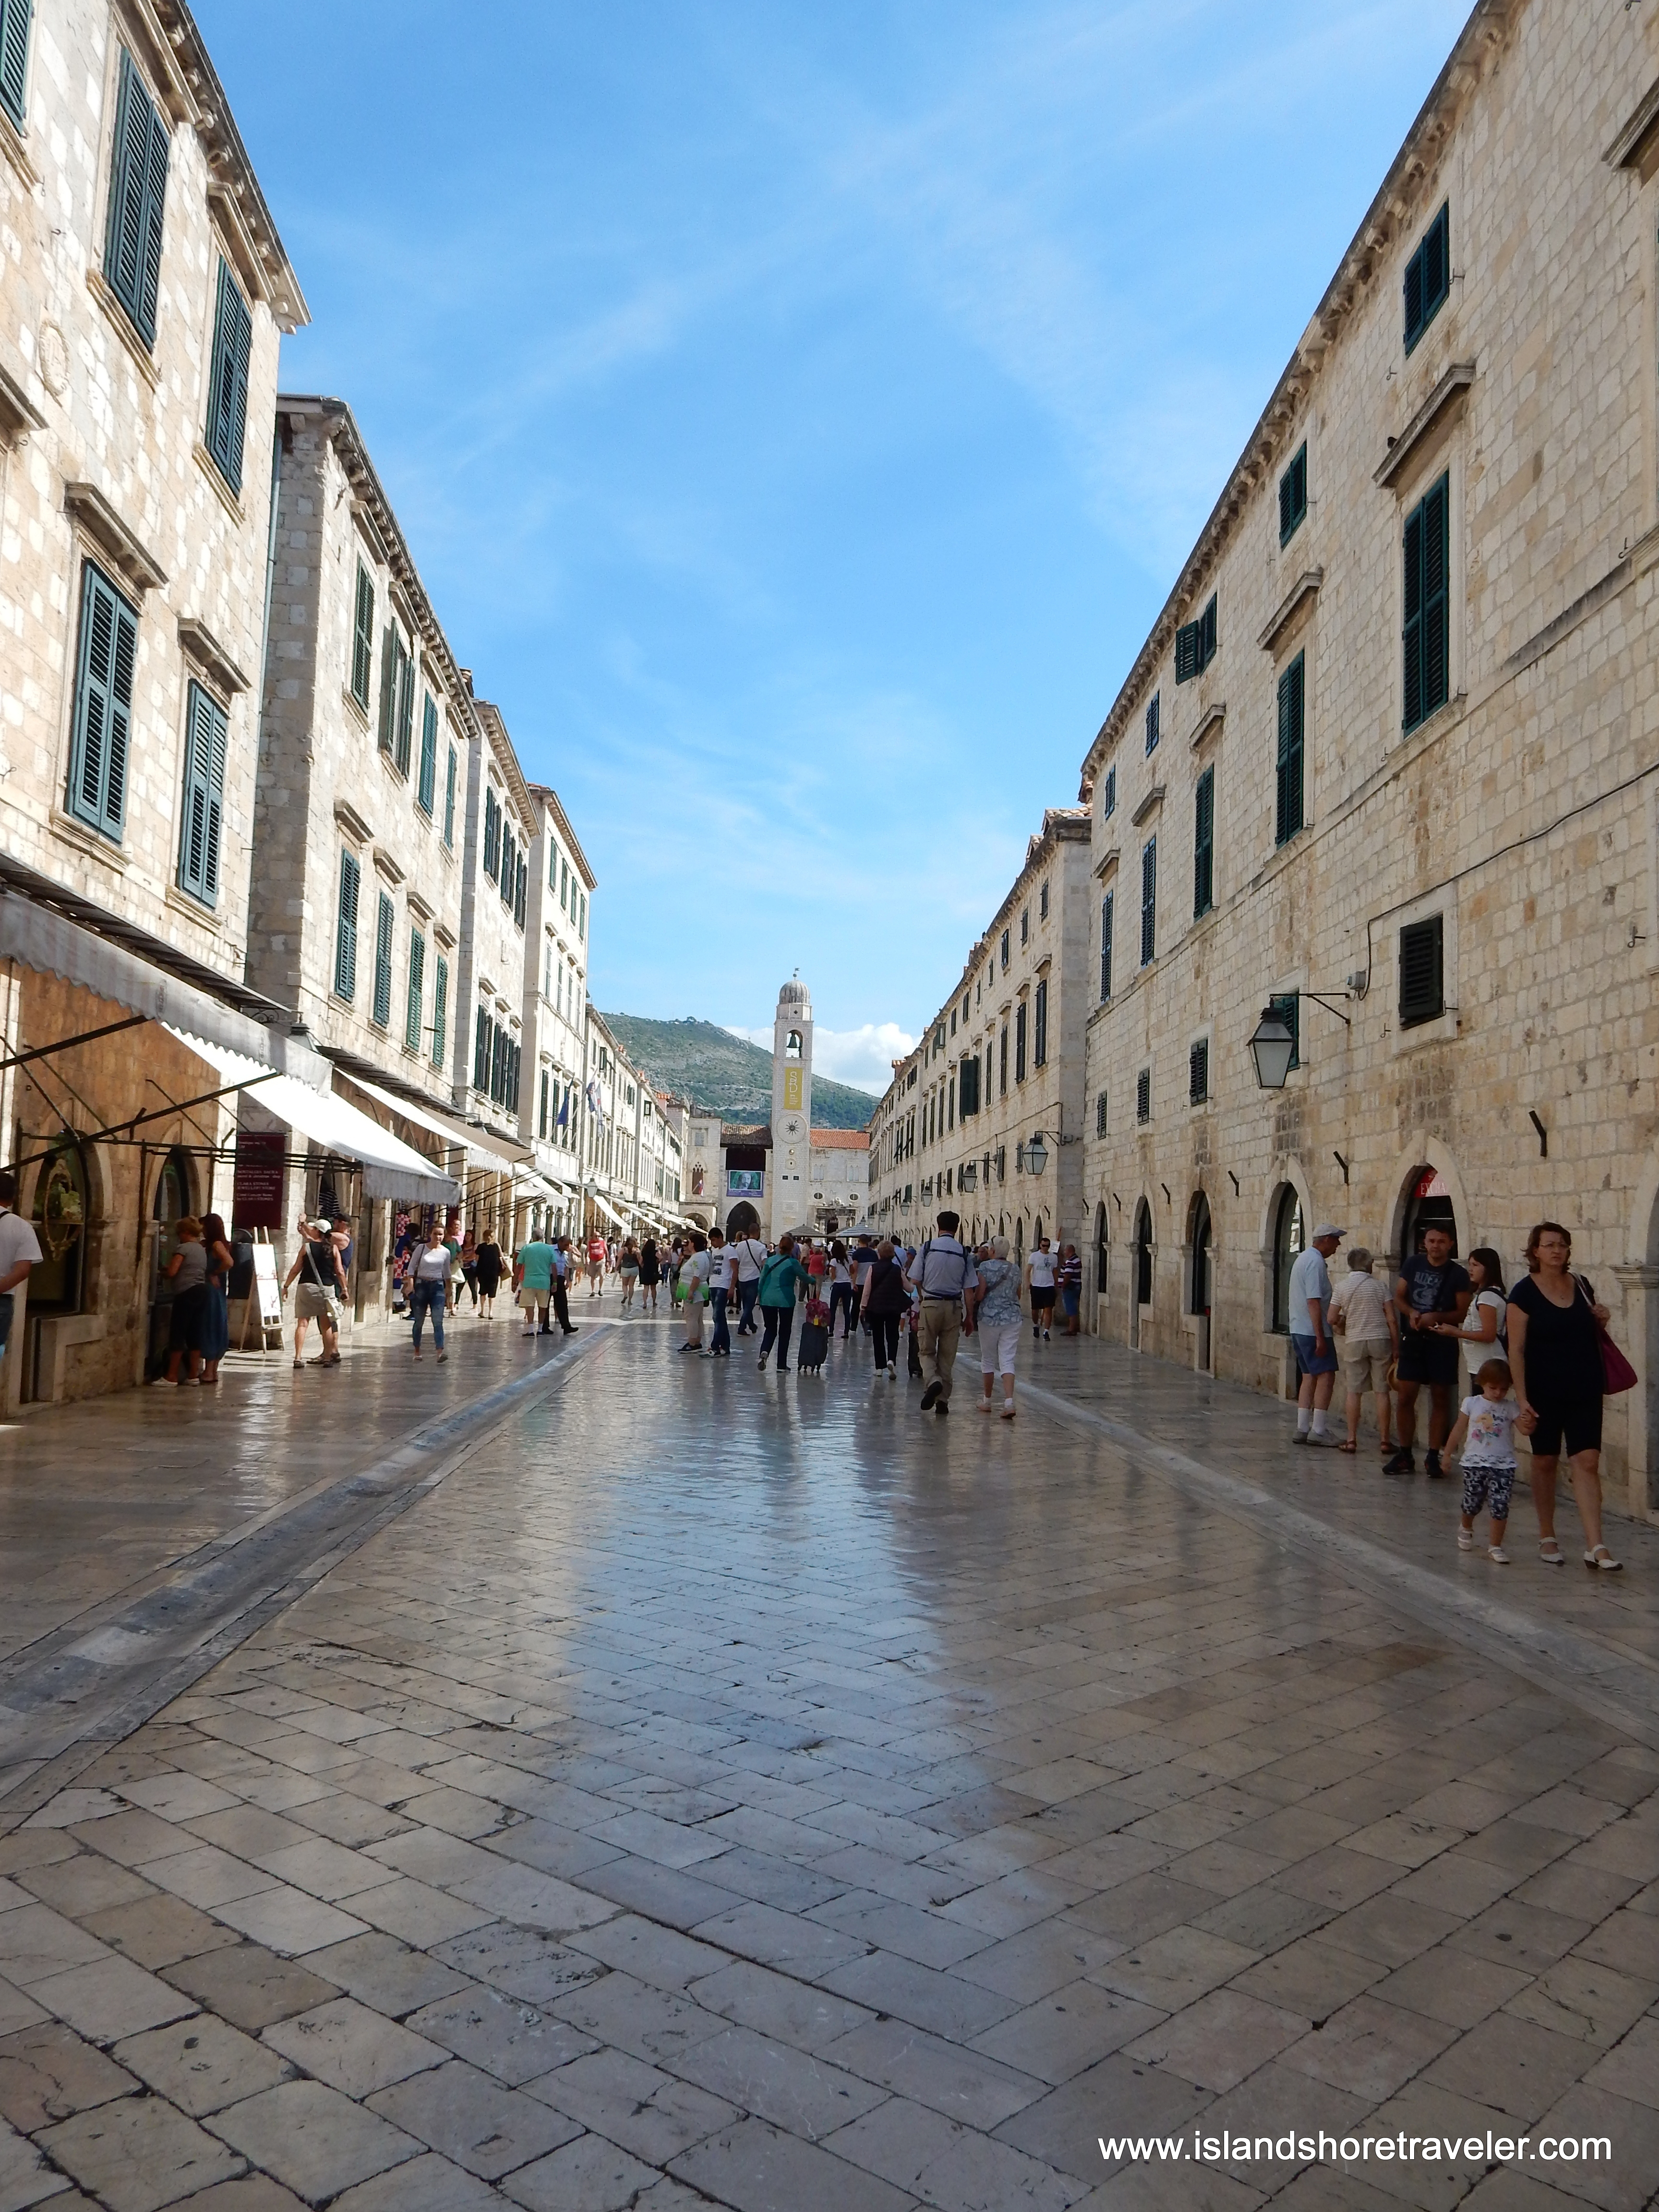 The Stradun in Old Town Dubrovnik